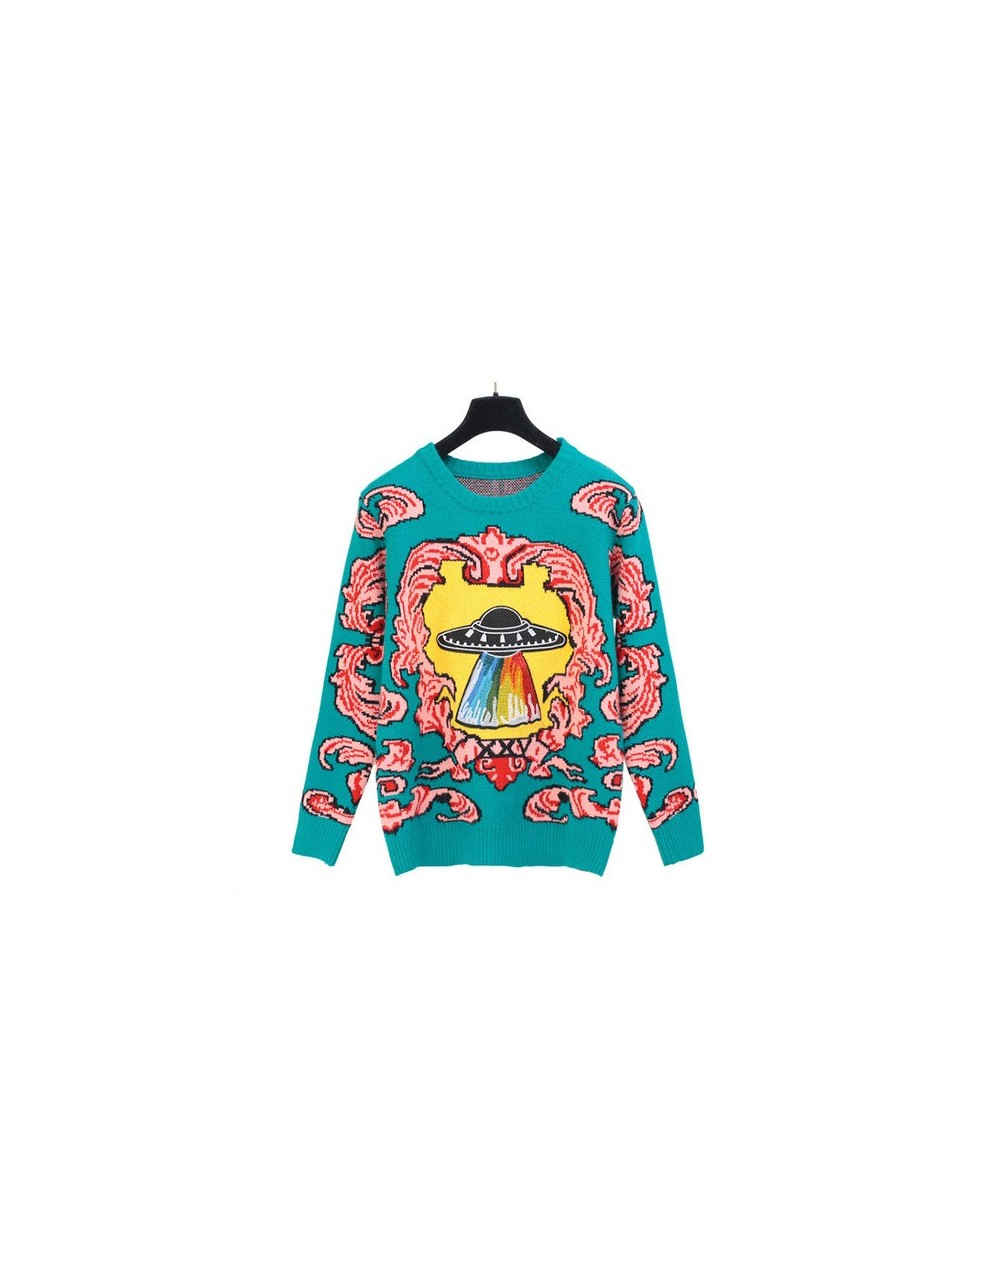 Women New vintage warm sweaters UFO Clouds Jacquard pullovers winter autumn knitted retro loose tops blusas C-012 - as pictu...